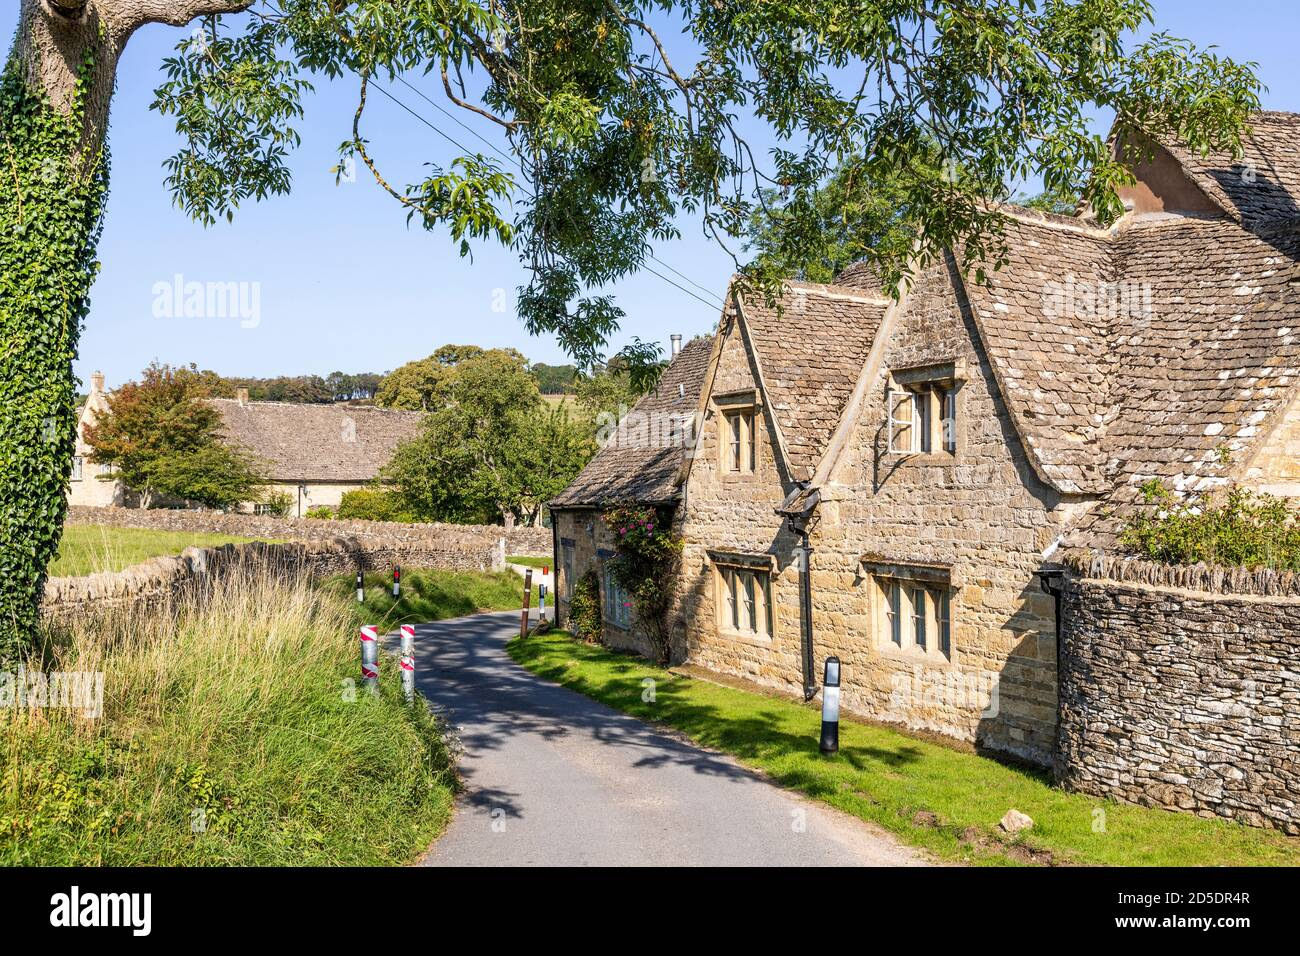 Old stone cottages at Barton near the Cotswold village of Guiting Power, Gloucestershire UK Stock Photo